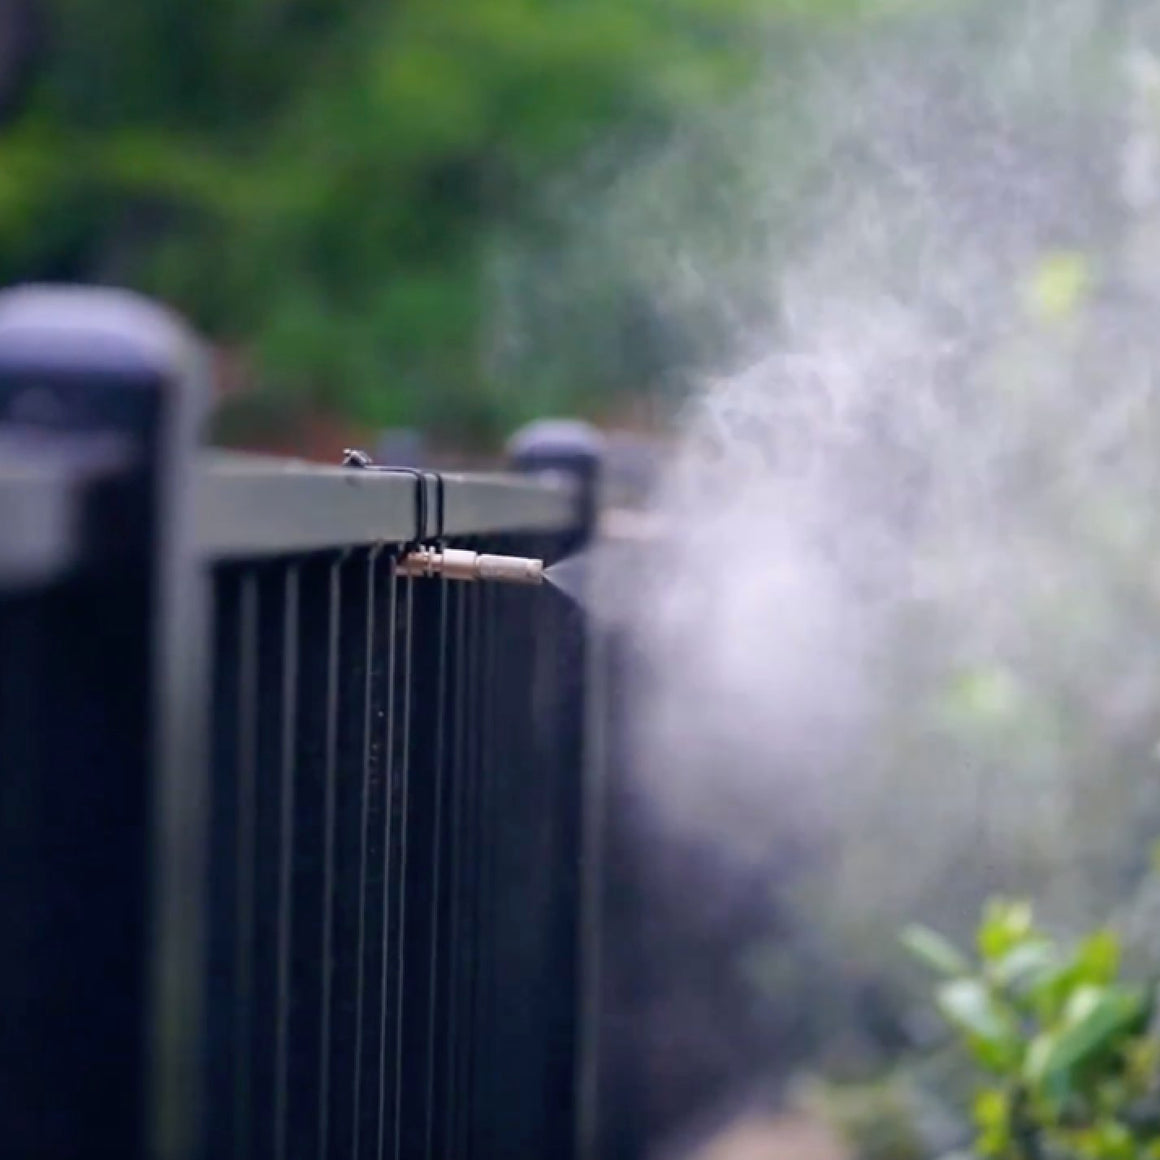 Automatic Custom Mosquito Control Misting System - Eliminate Mosquitos from your home or business.